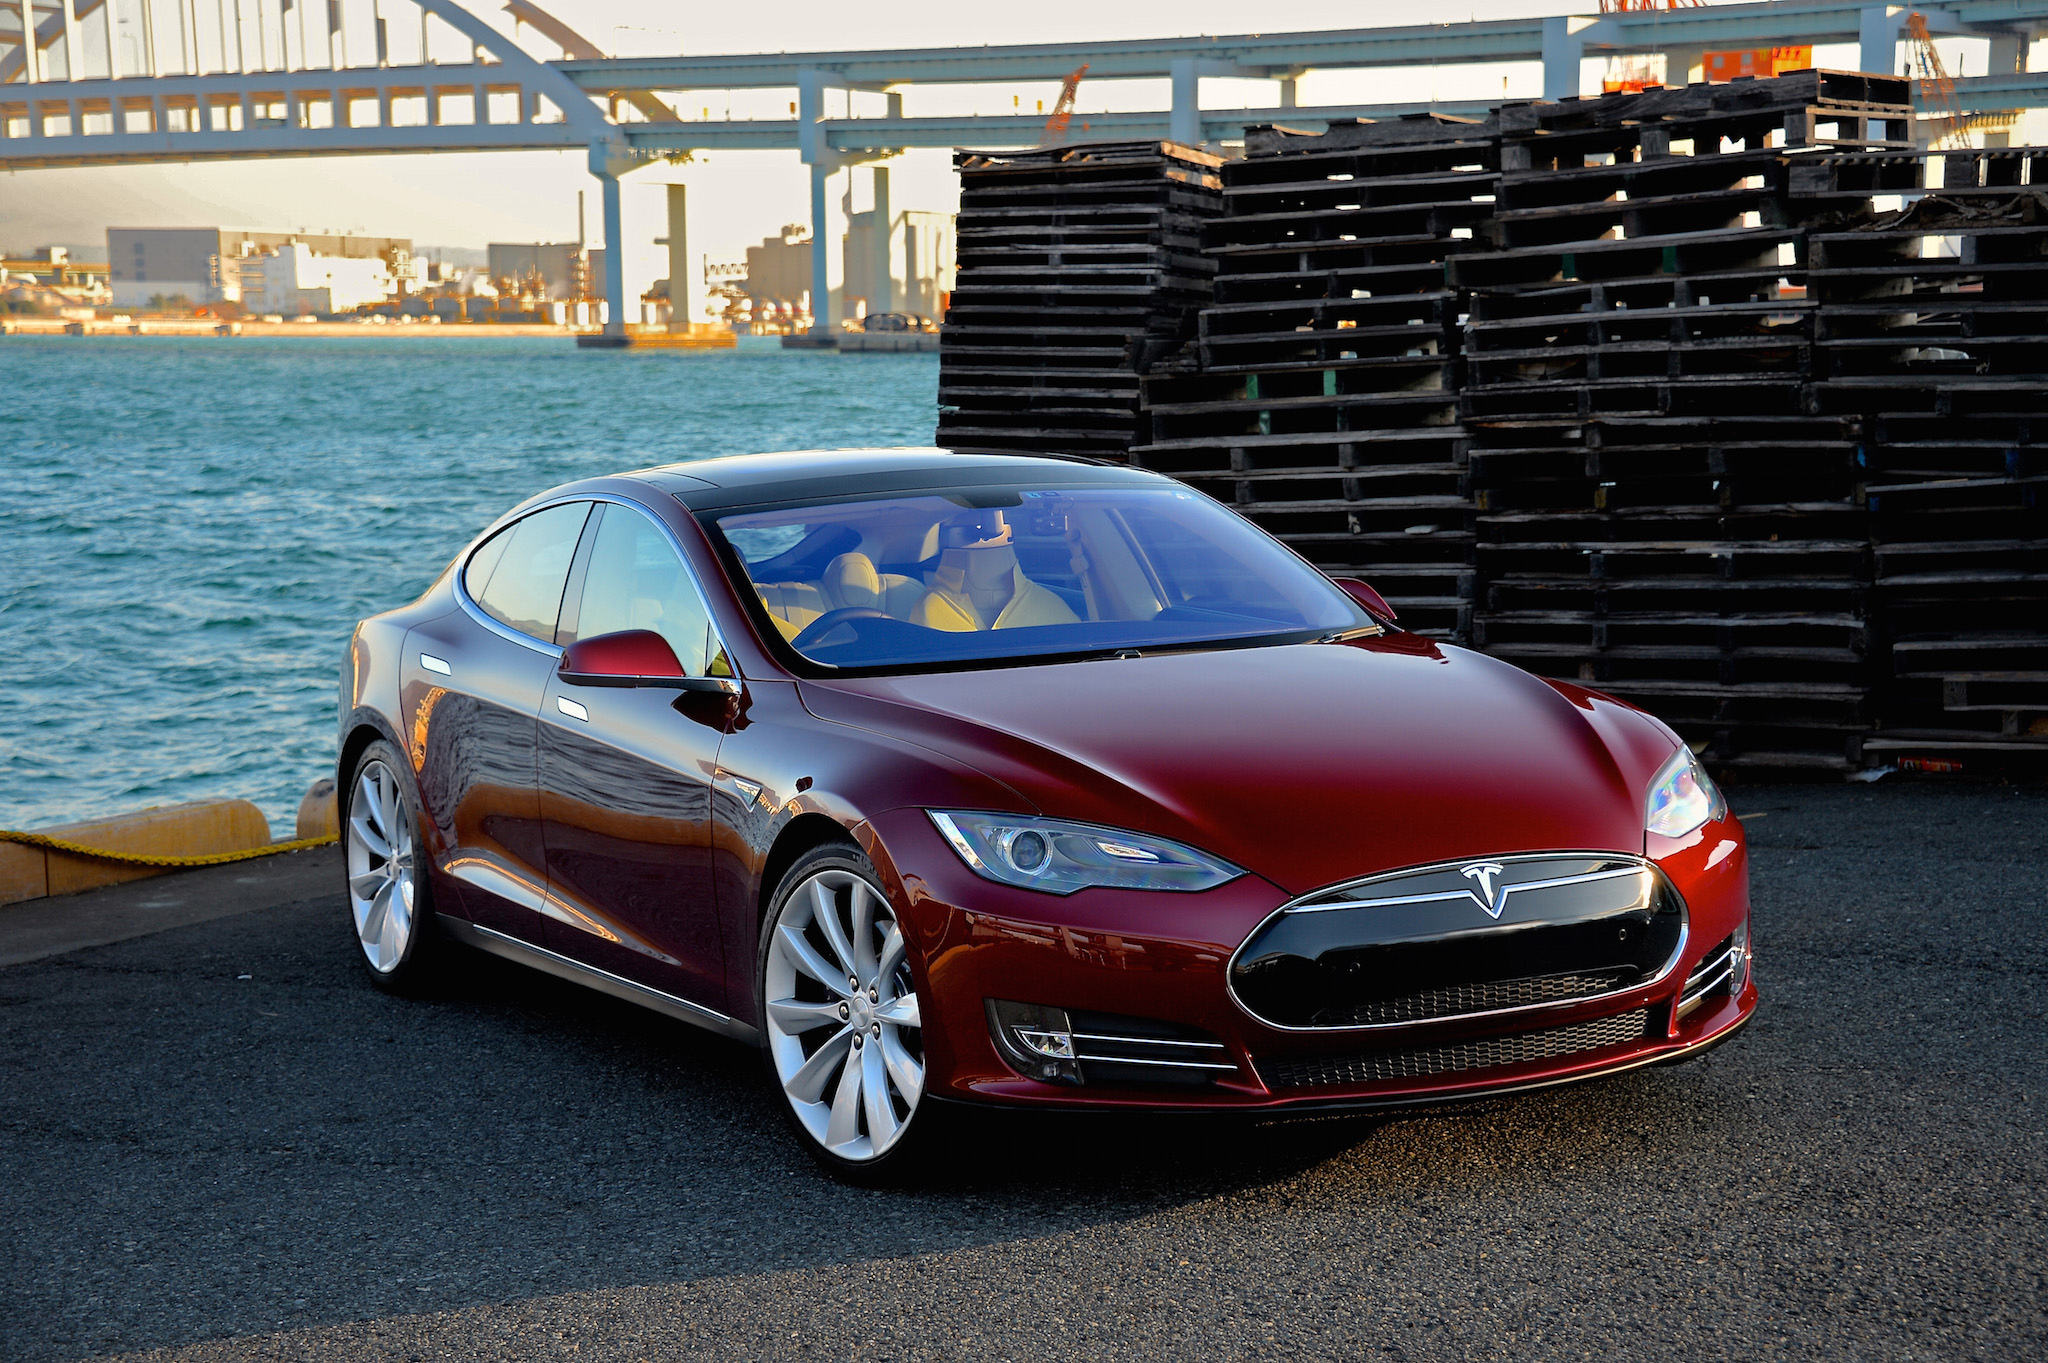 The Tesla Model S was first introduced to the United States in 2012. (Photo via Wikimedia Commons)